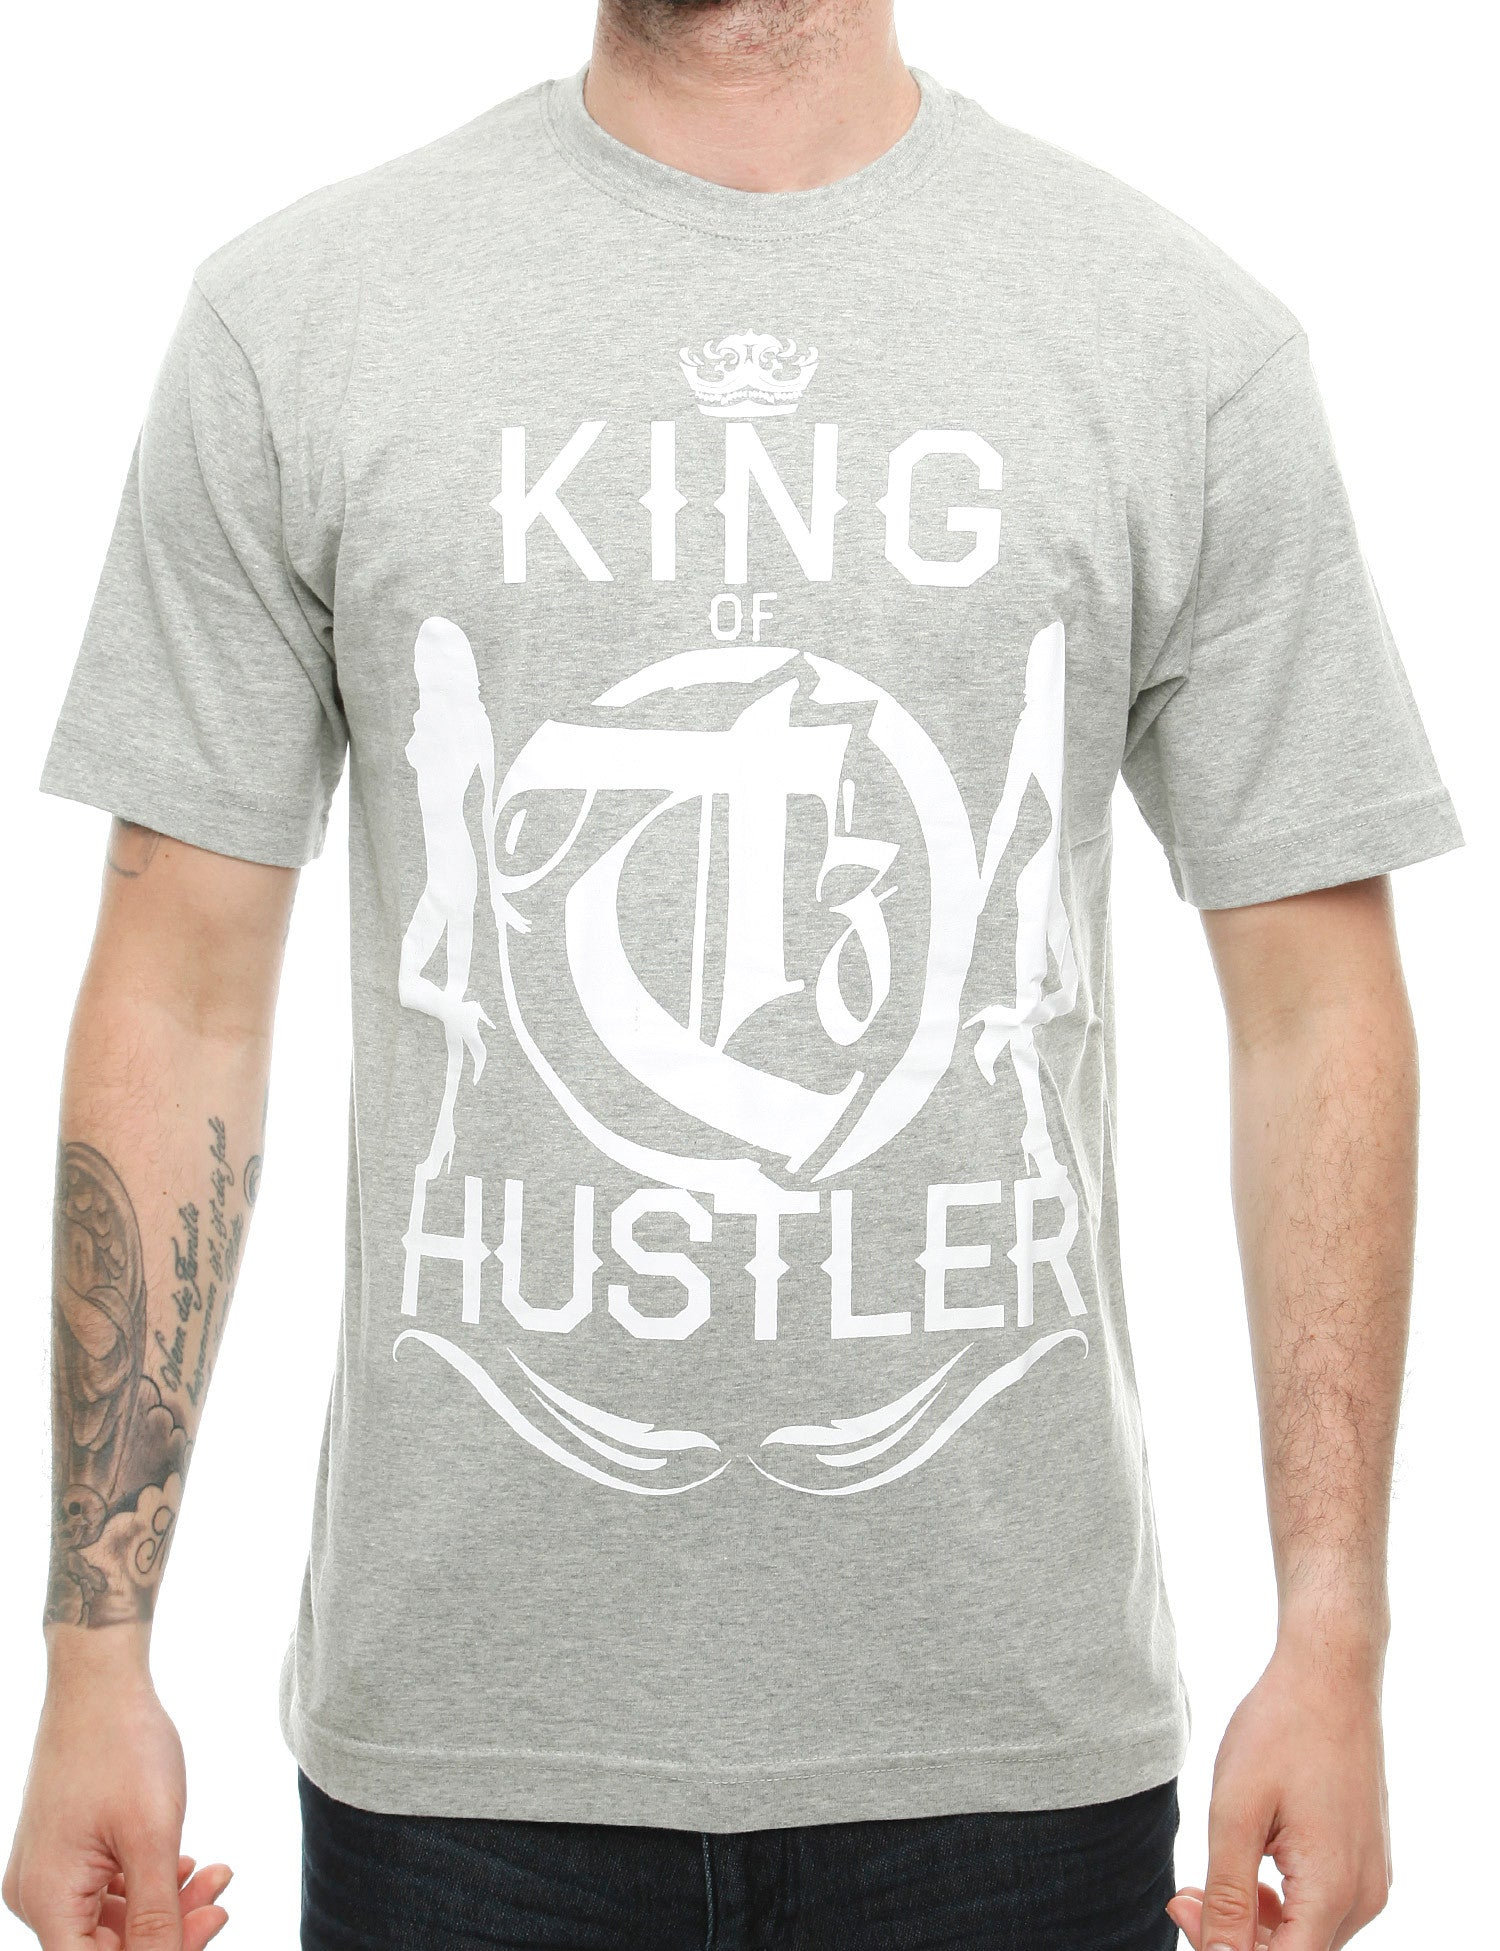 Townz King Hustle T-Shirt TNZ16-003 Grey